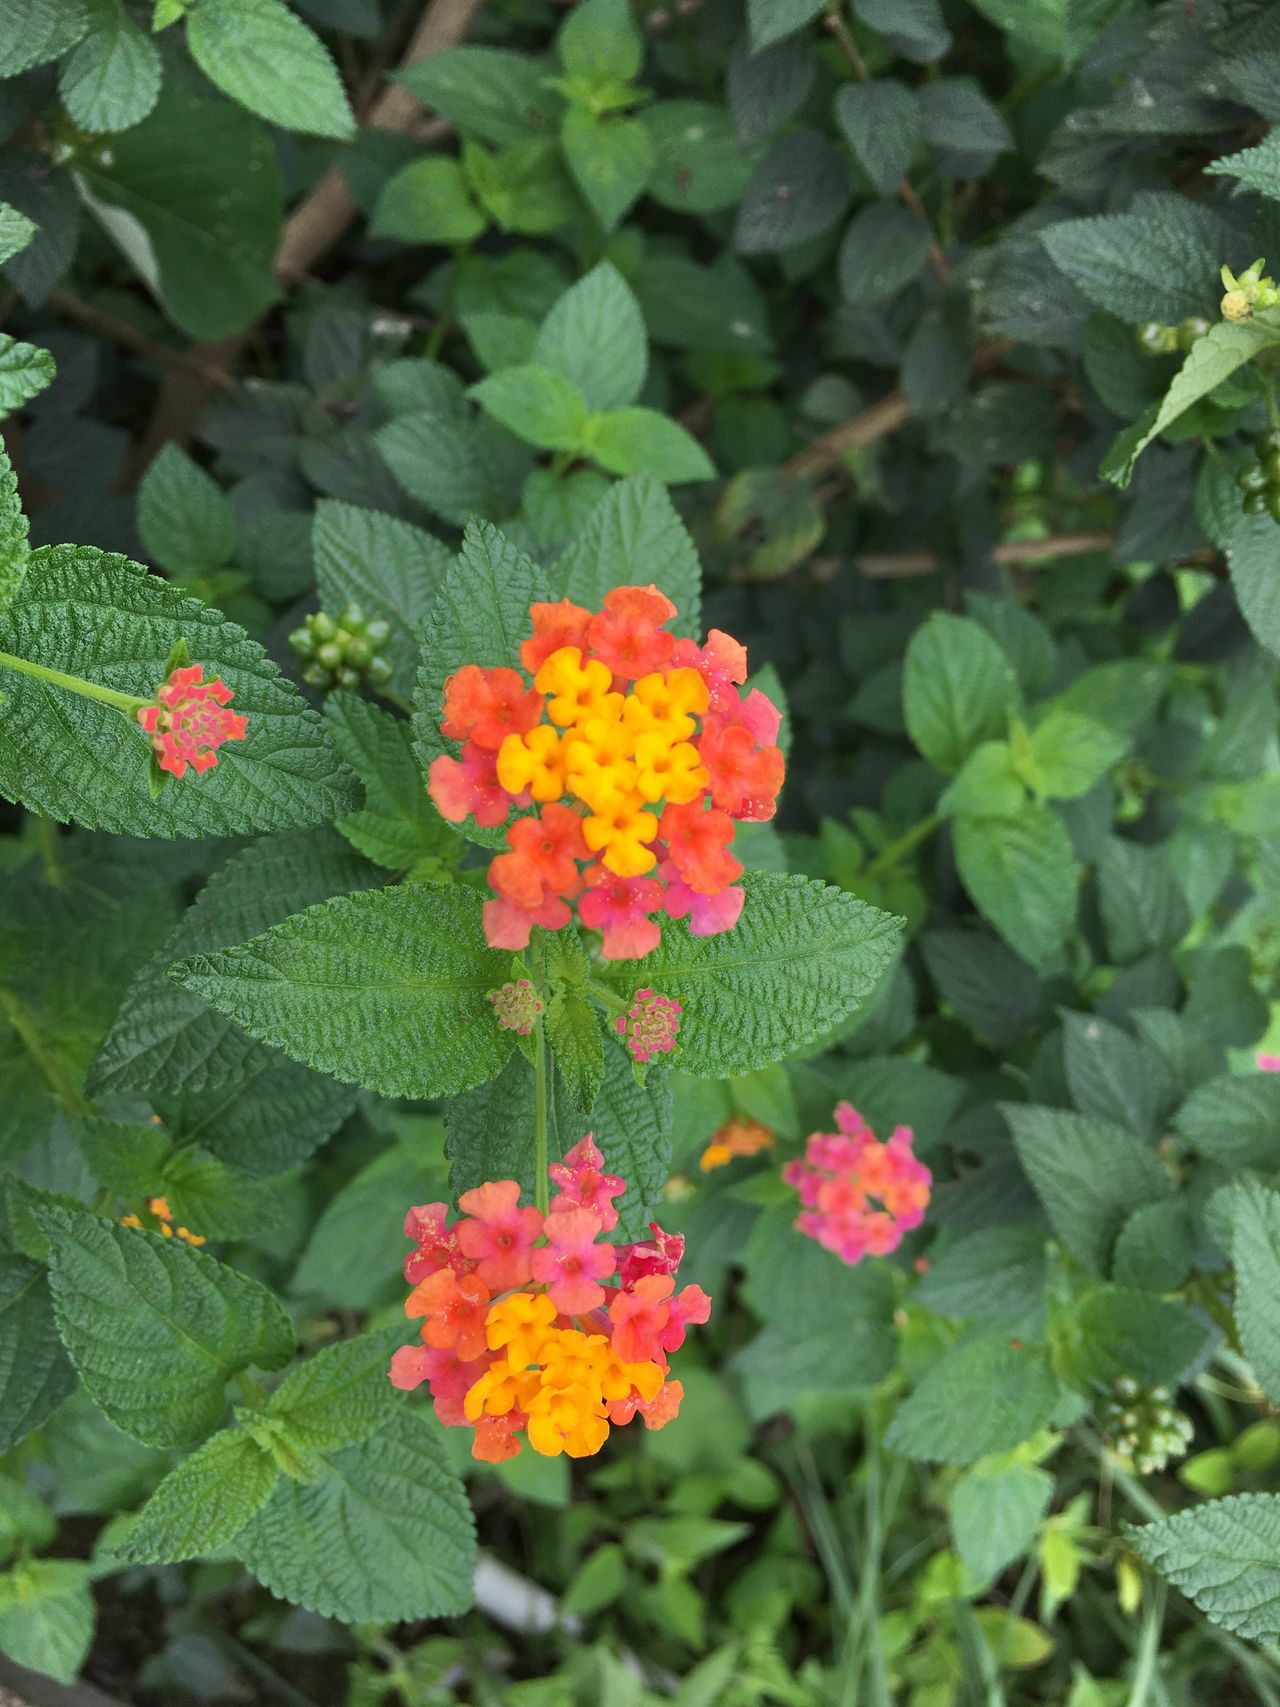 Leaf Flower Growth Green Color Plant Beauty In Nature Nature Fragility Blooming Freshness No People Day Lantana Camara Flower Head Outdoors Petal Close-up Zinnia